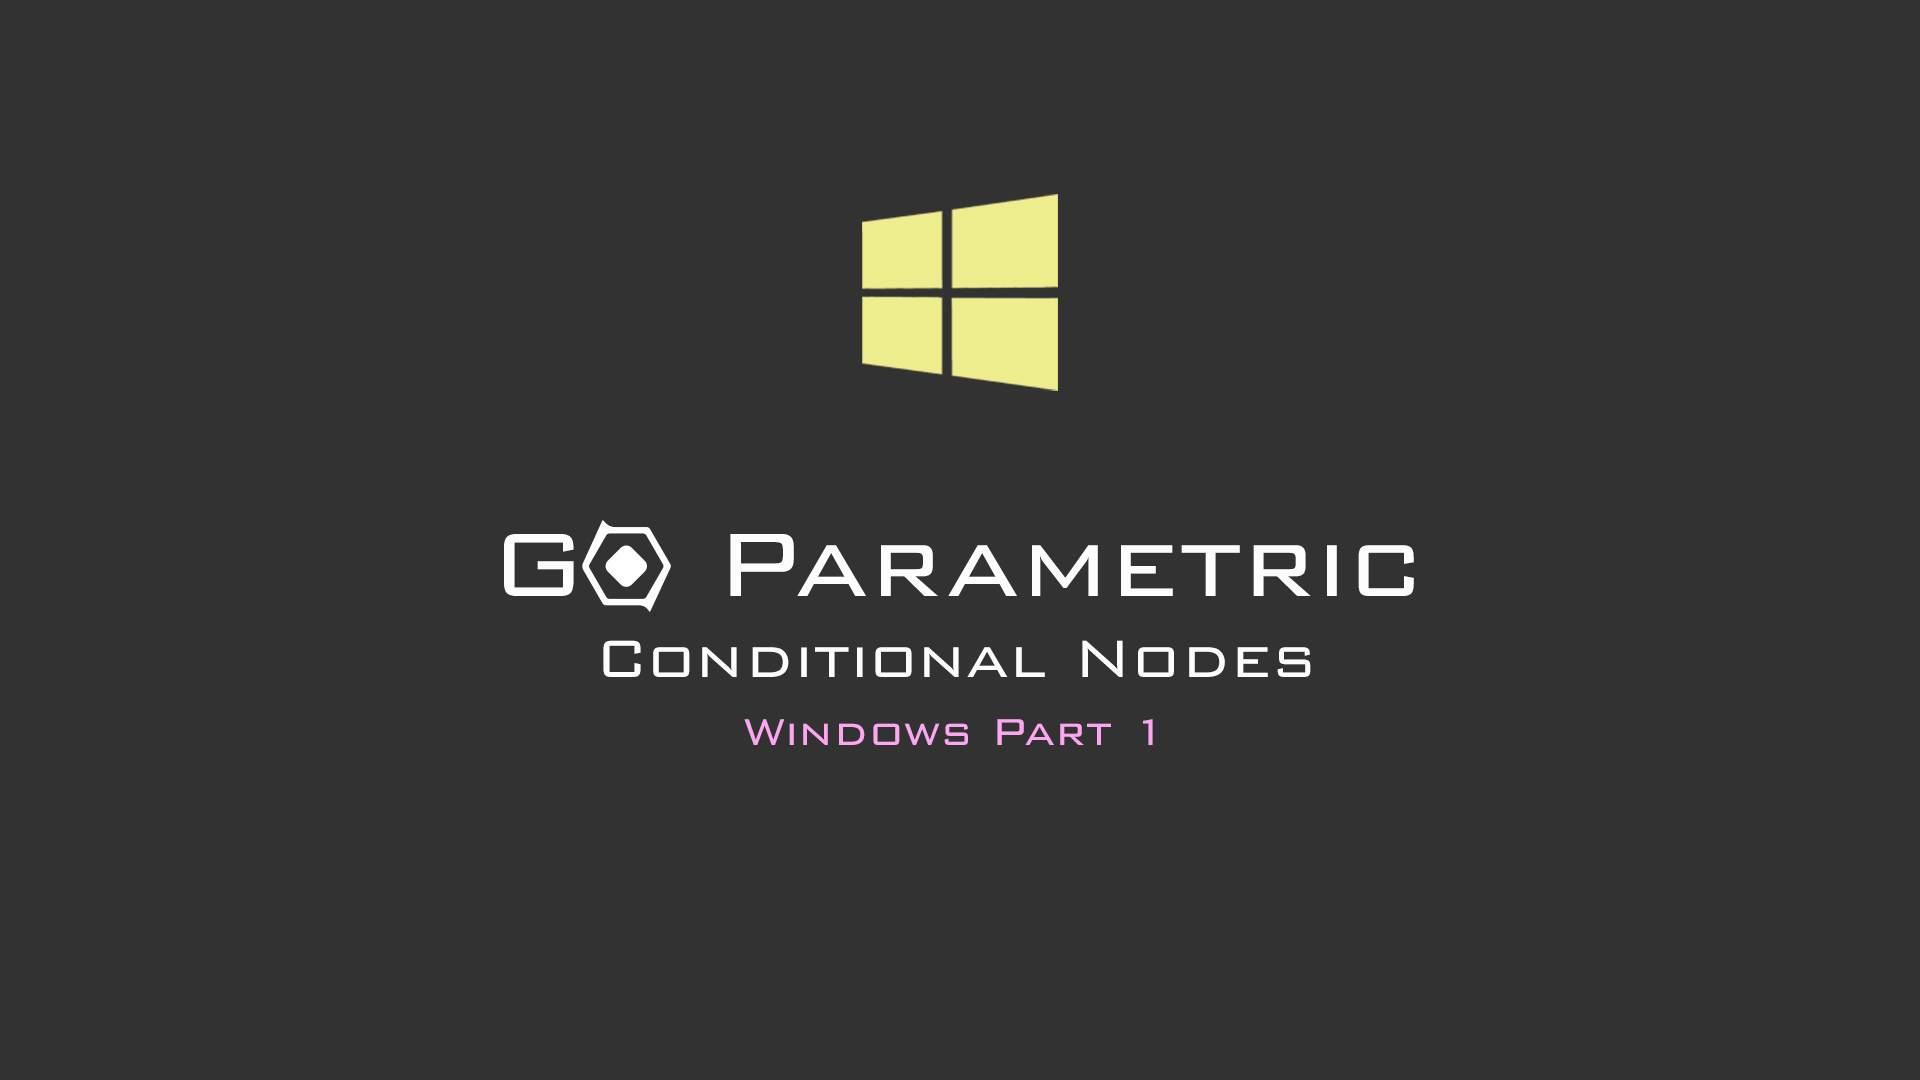 Go Parametric_Conditional_Nodes_Pt1.jpg